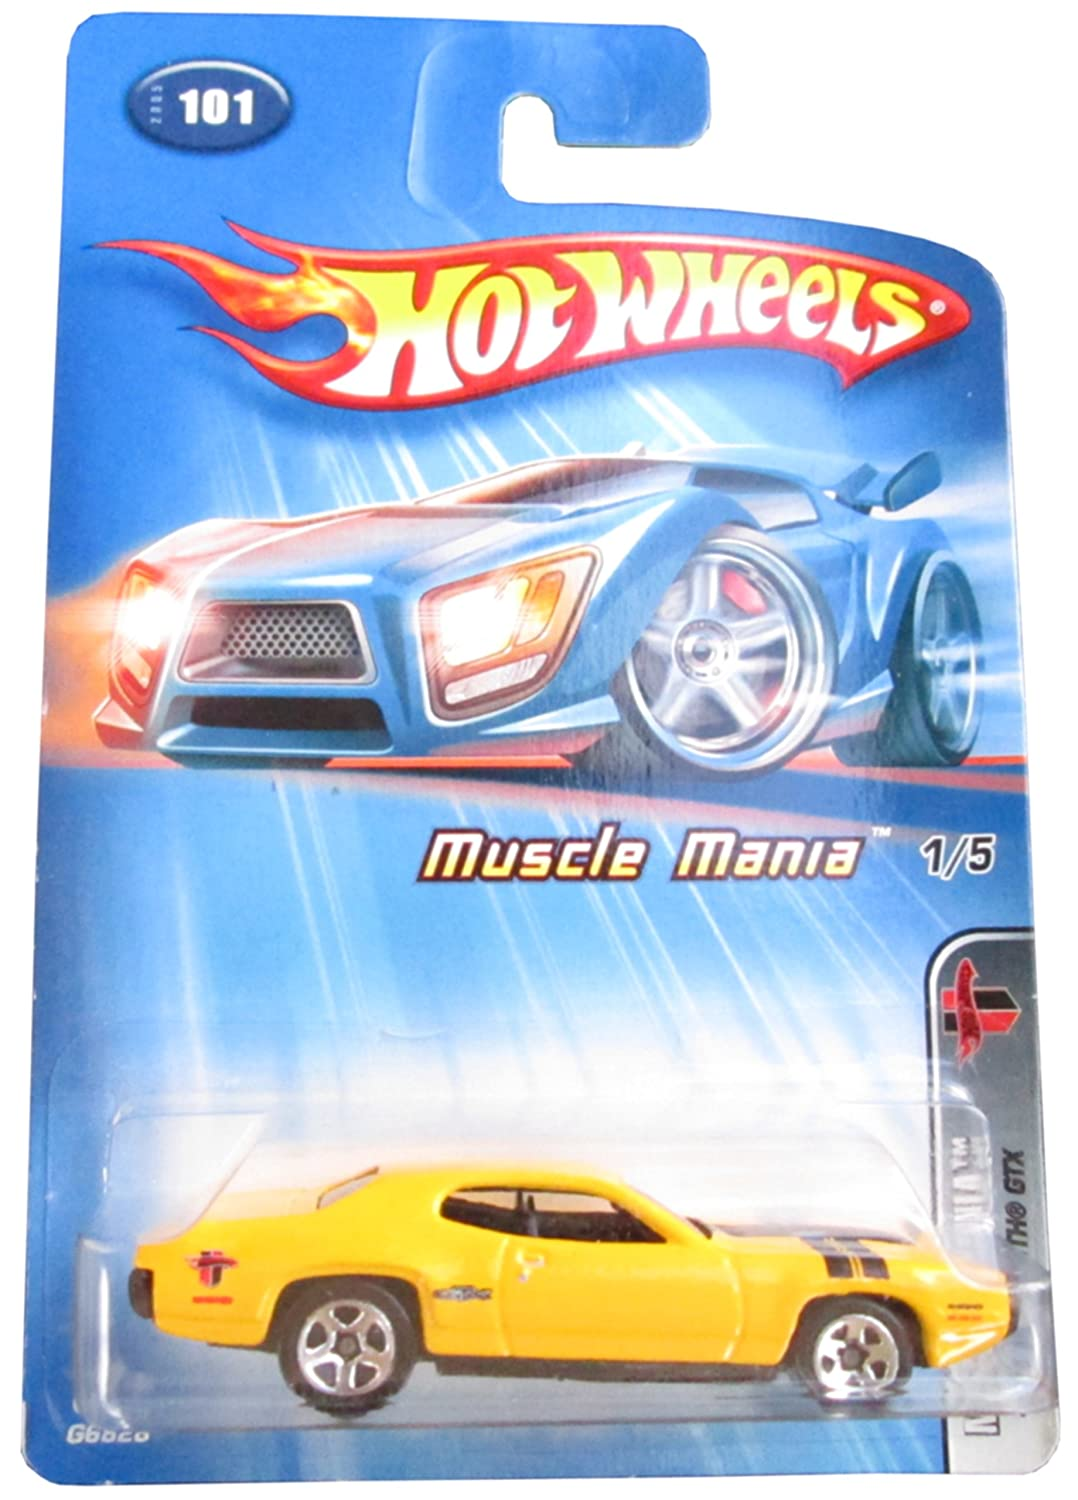 Hot Wheels 2005-101 1971 Plymouth Gtx 1/5 Muscle Mania 1:64 Scale by Hot Wheels Mattel